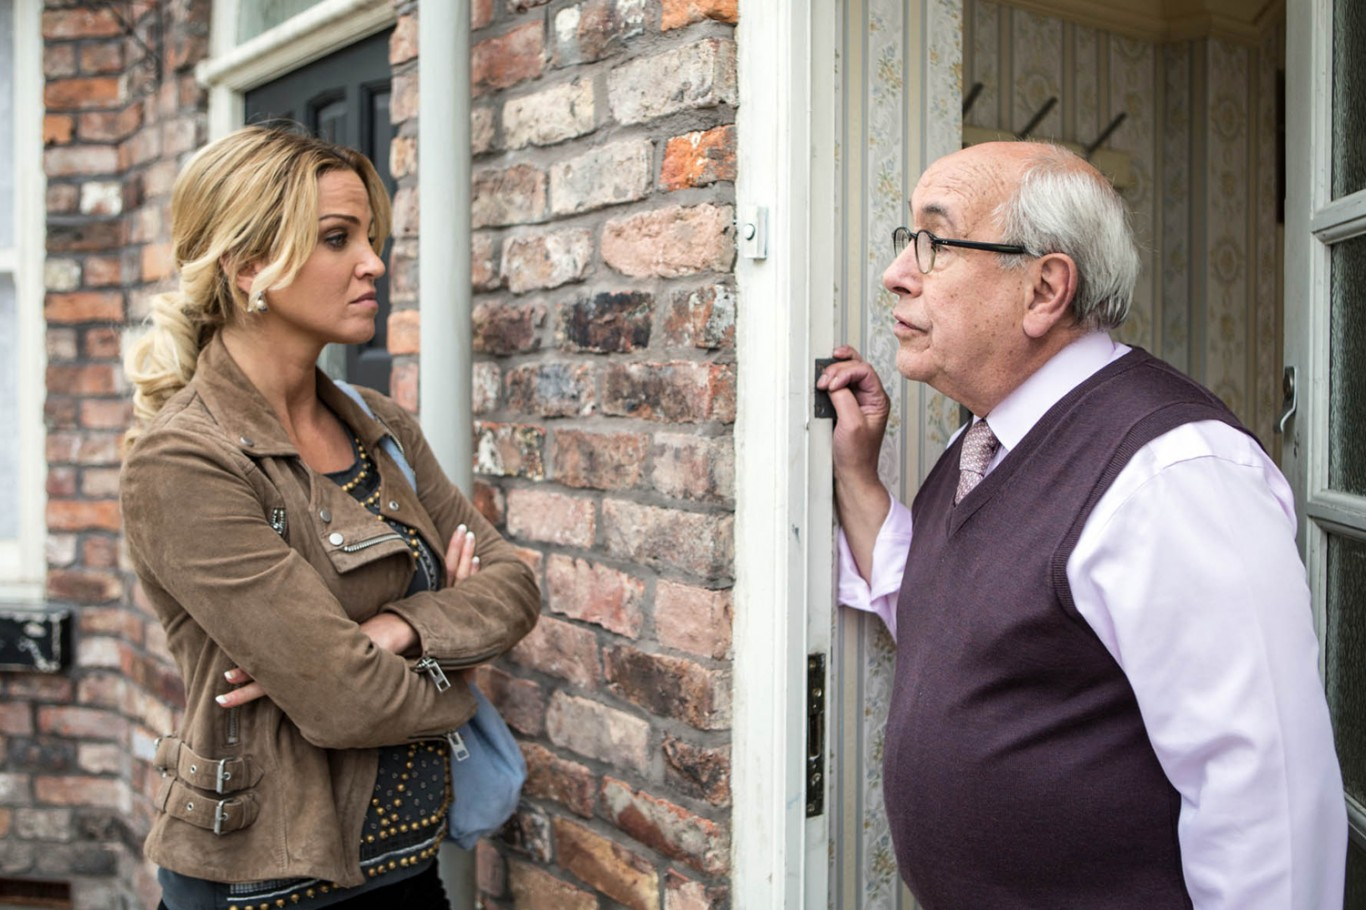 Corrie's new producer Kate Oates is not the biggest fan of celebrity cameos